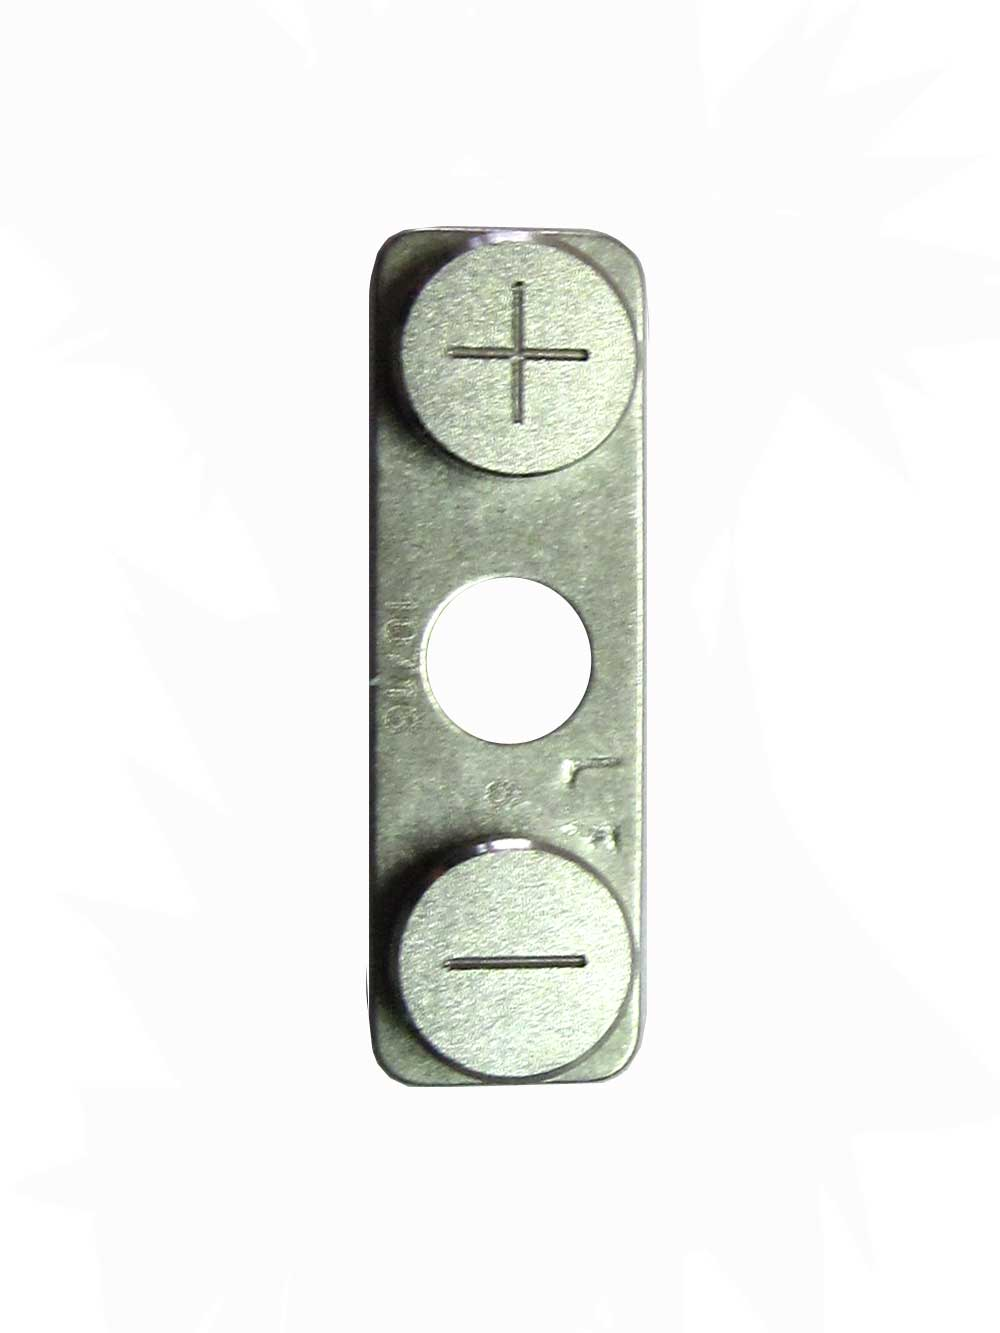 IPHONE 4G VOLUME KEY